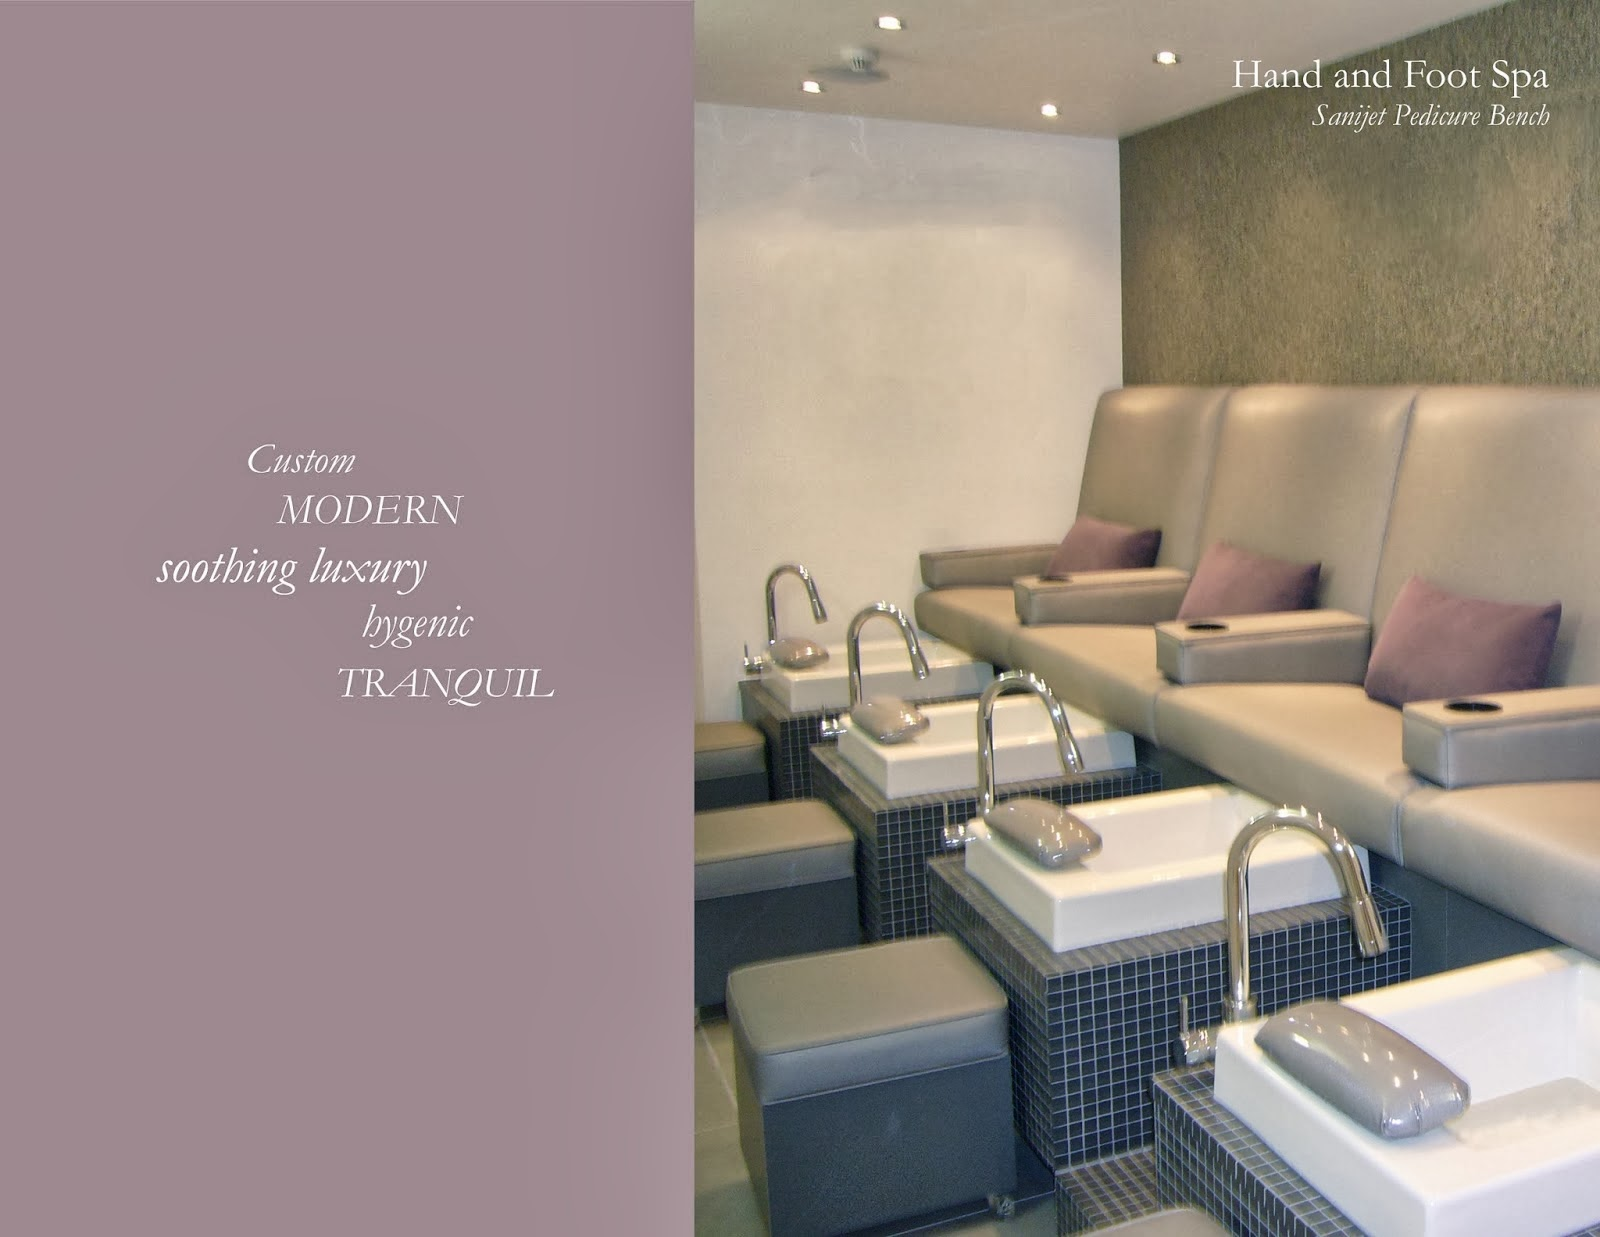 Michele Pelafas: Nail Spa & Salon Design